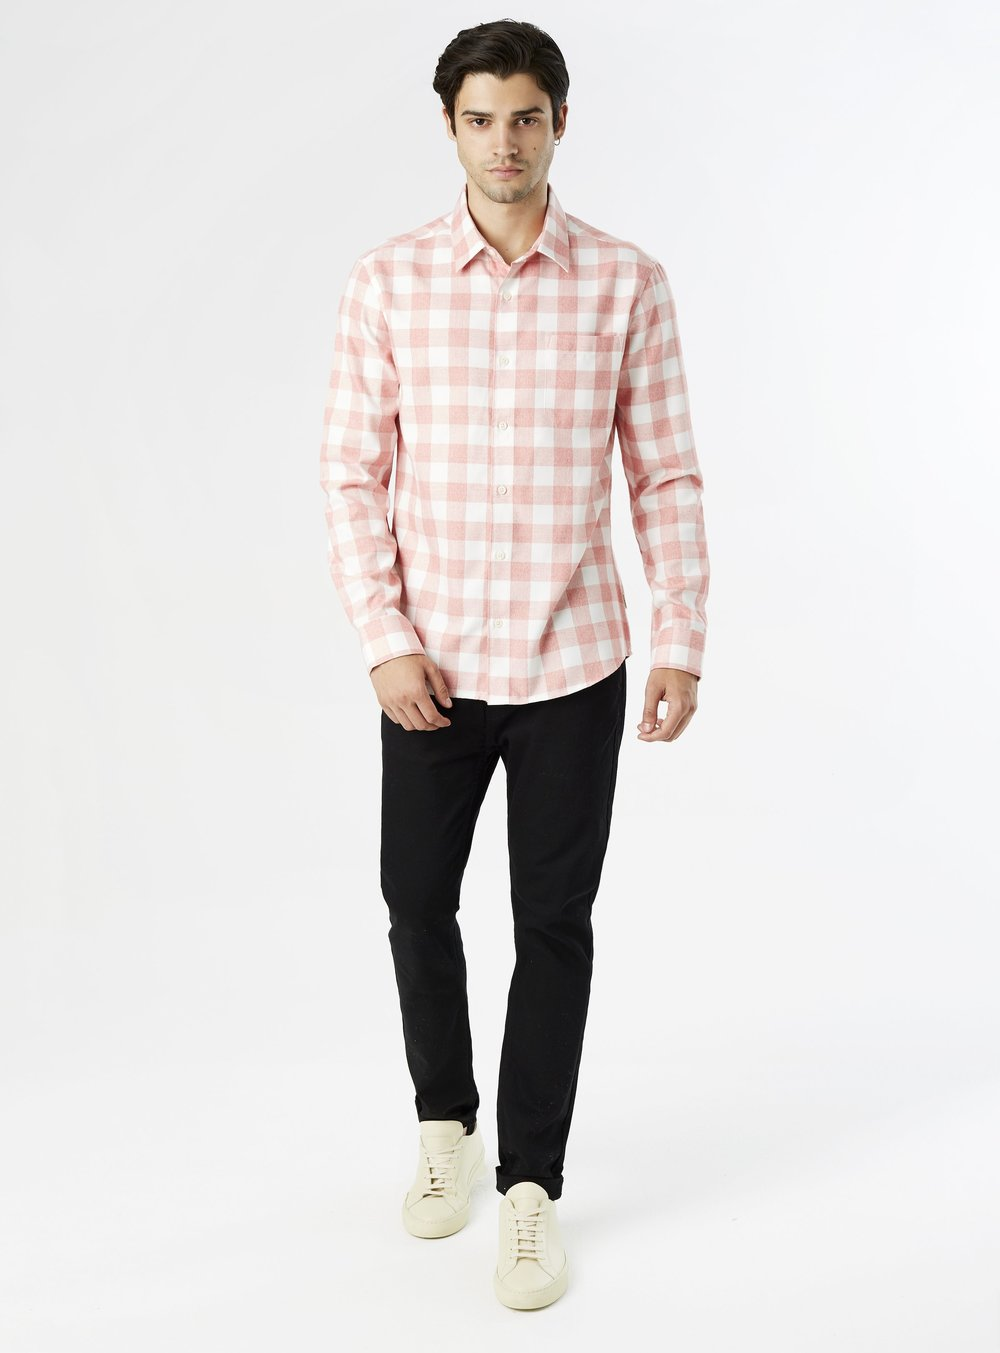 SMKF-1235-CORALWHITE-7DIAMONDS-FLANNEL-1.jpg